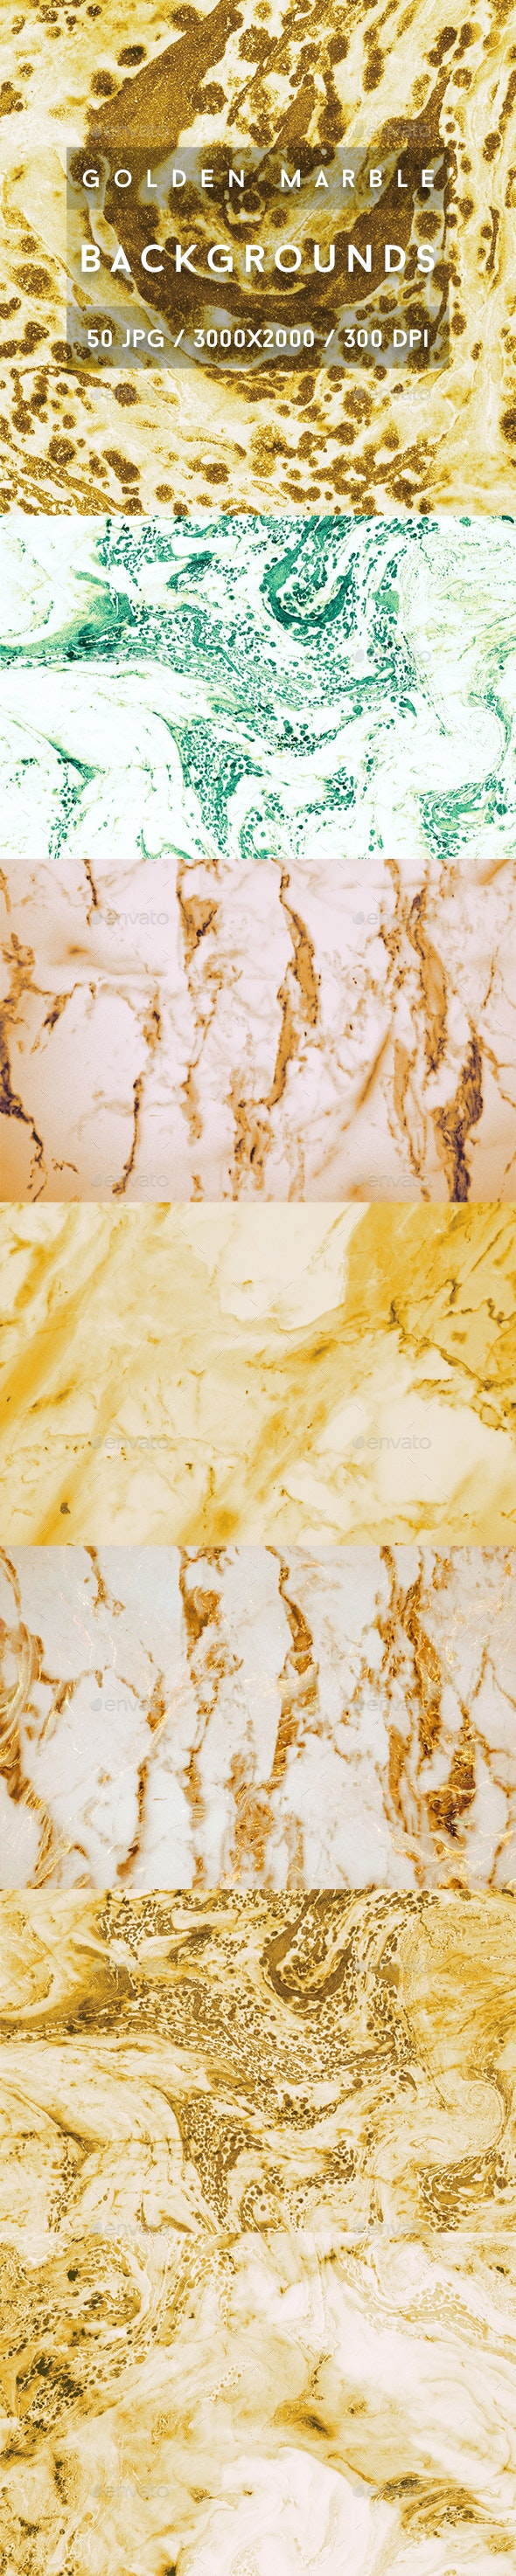 50 Golden Marble Backgrounds - Abstract Backgrounds